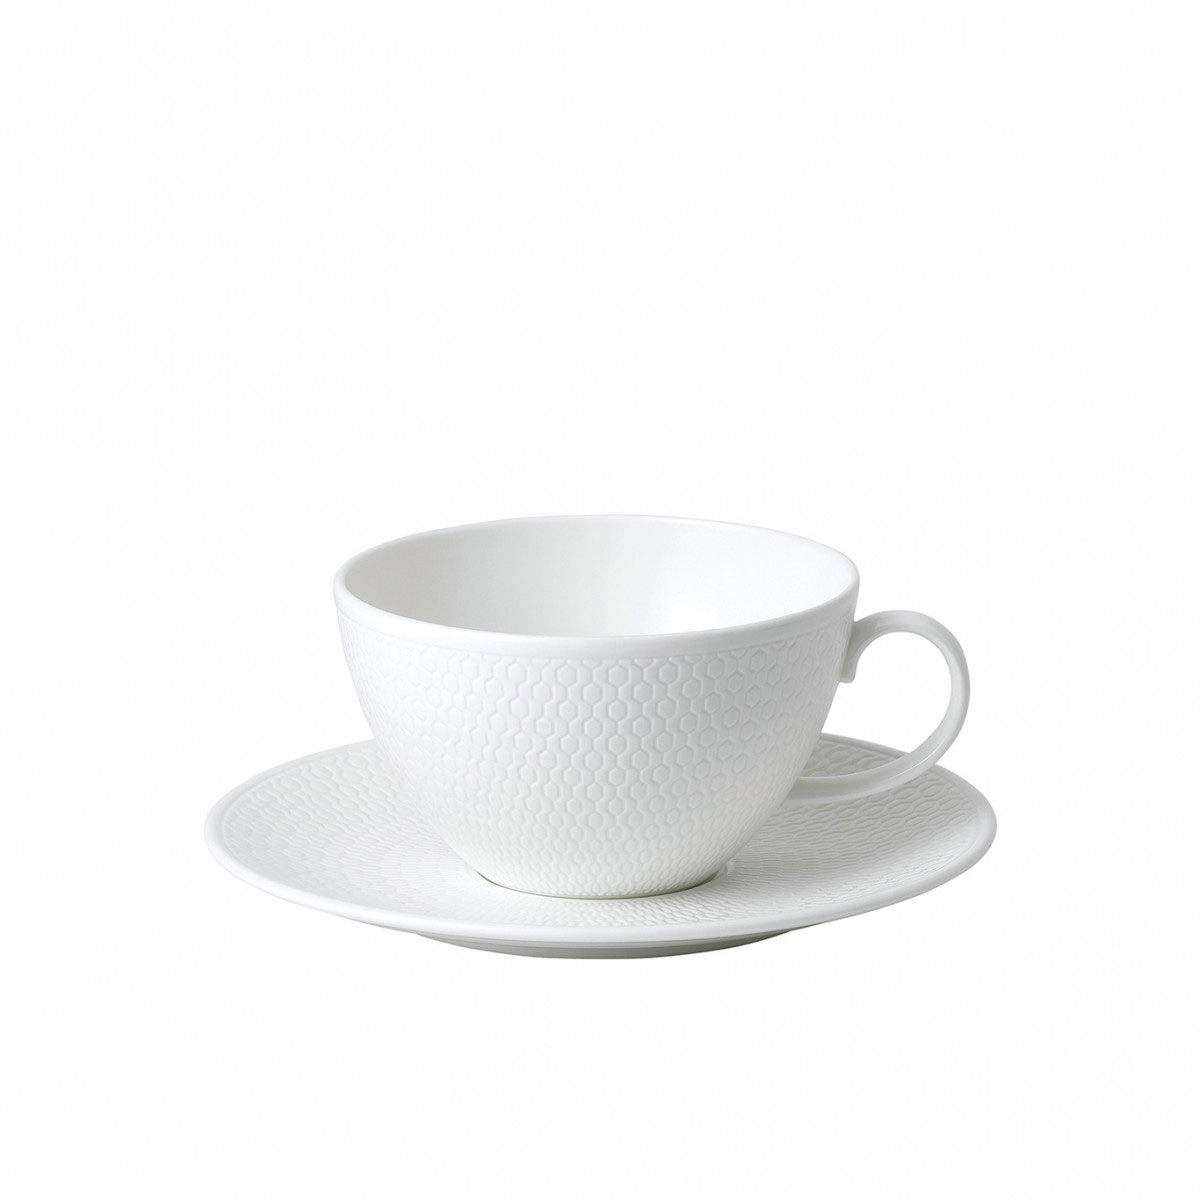 Wedgwood Gio Breakfast Cup and Saucer Set